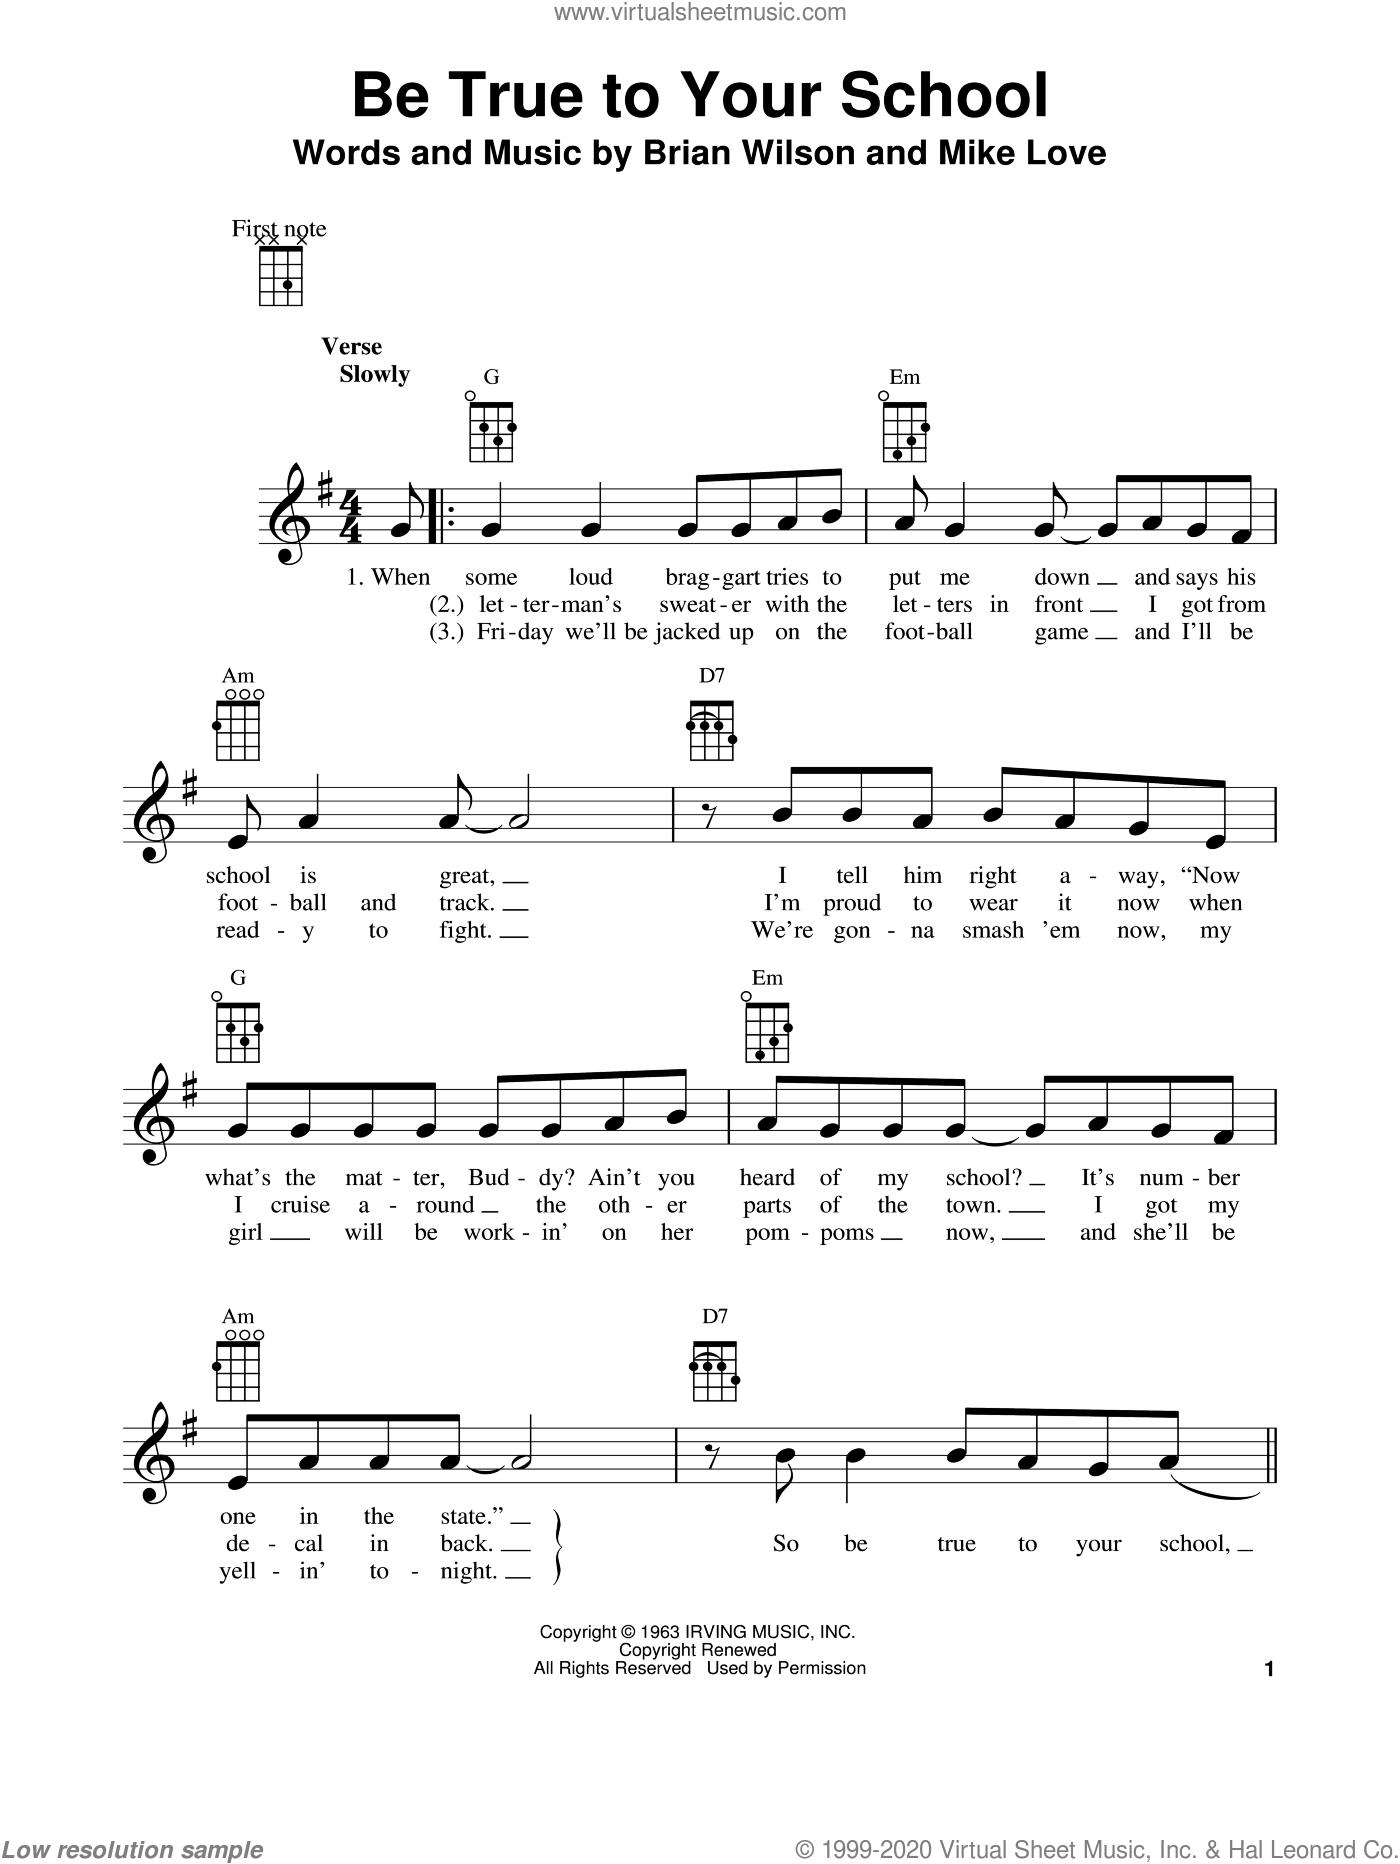 Be True To Your School sheet music for ukulele by The Beach Boys, Brian Wilson and Mike Love, intermediate skill level